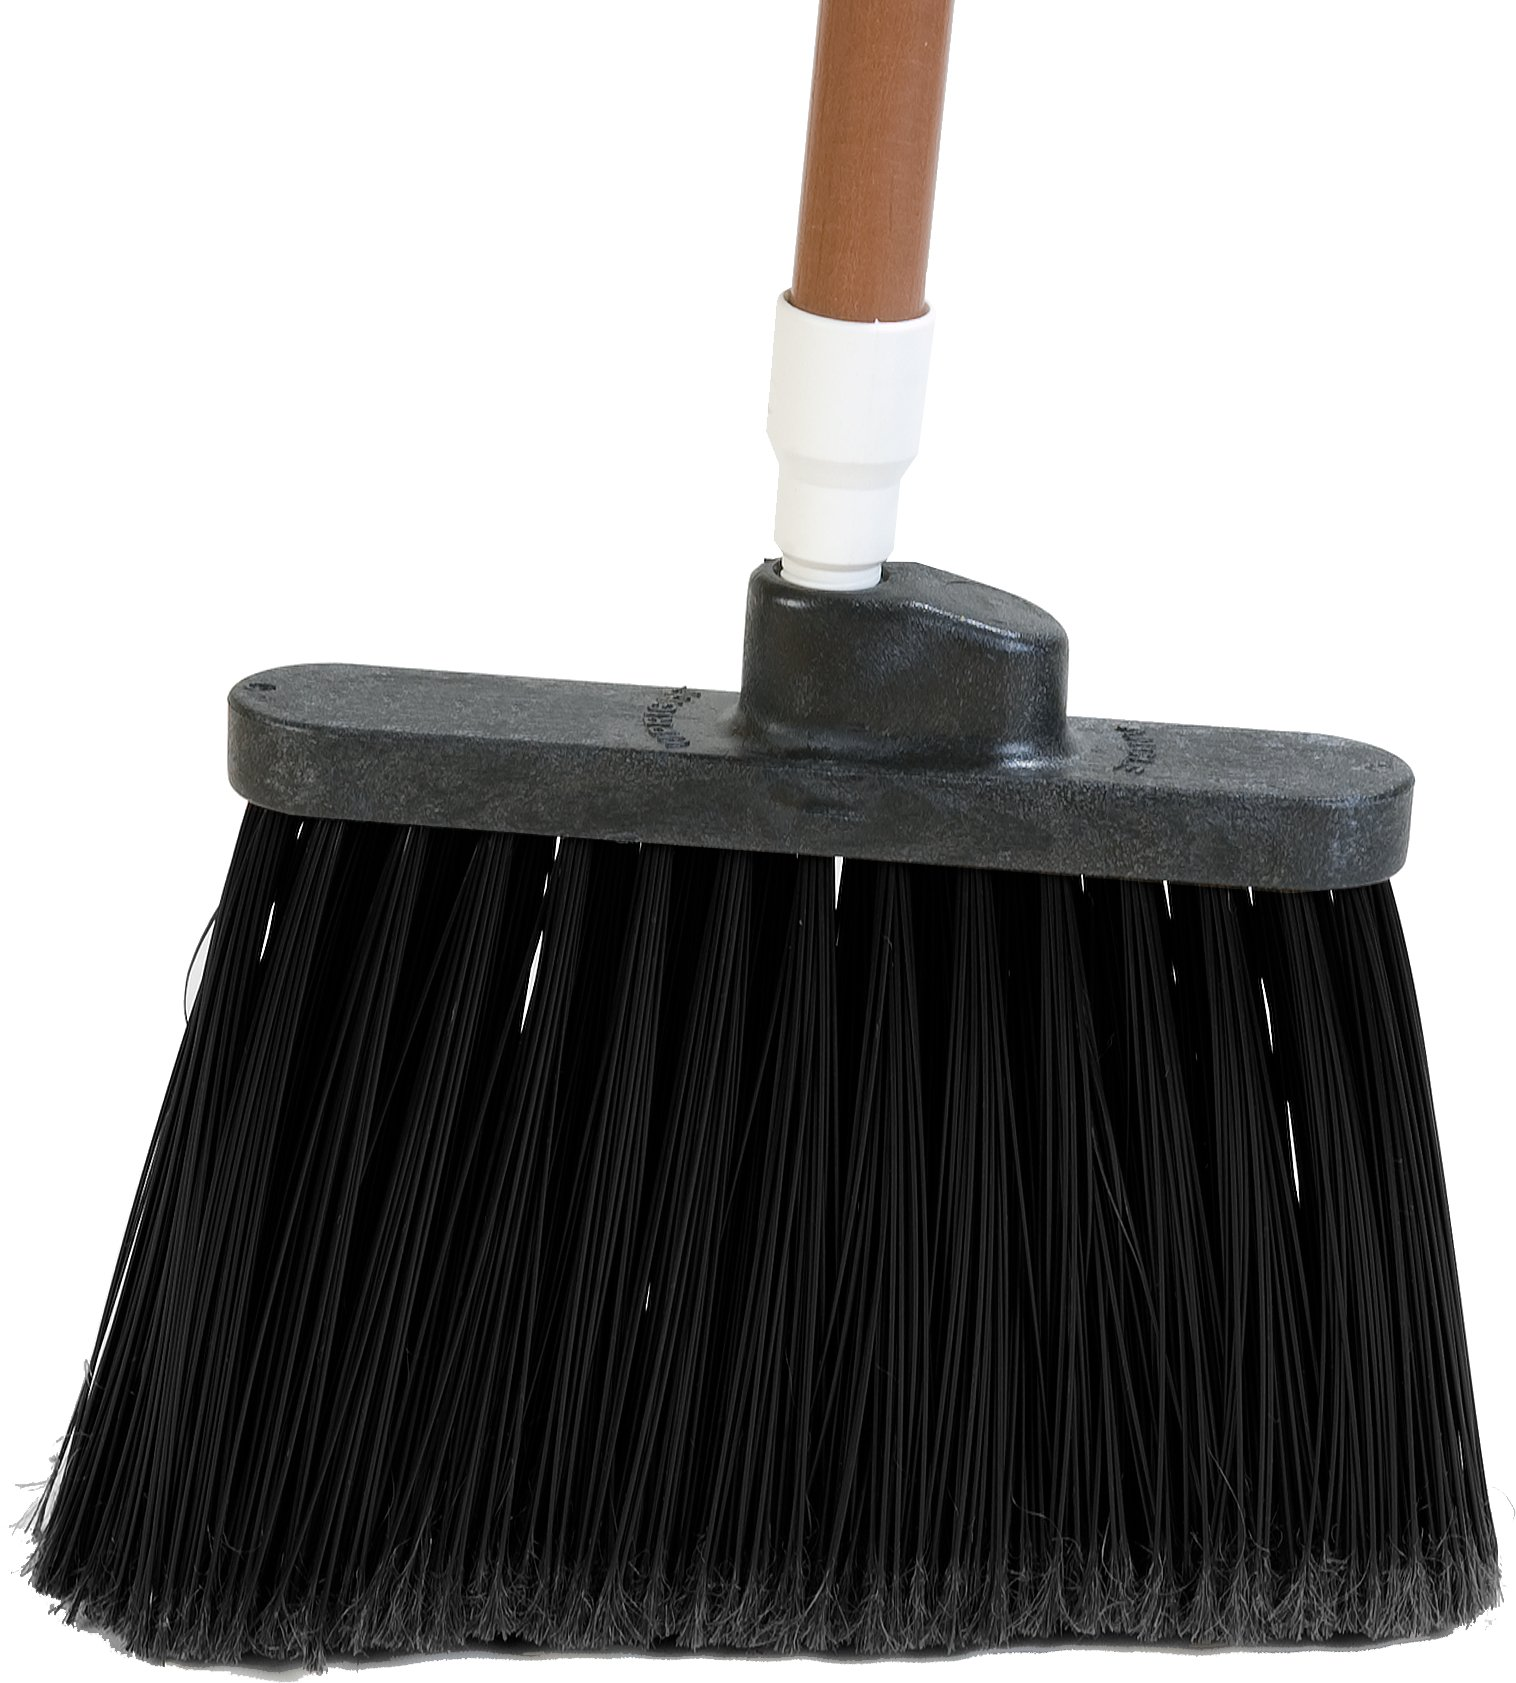 Carlisle 3686703 Duo-Sweep Medium Duty Flagged Angle Broom Head, Polypropylene Bristle, 8'' Overall Length x 12'' Width, Black (Case of 12) by Carlisle (Image #6)